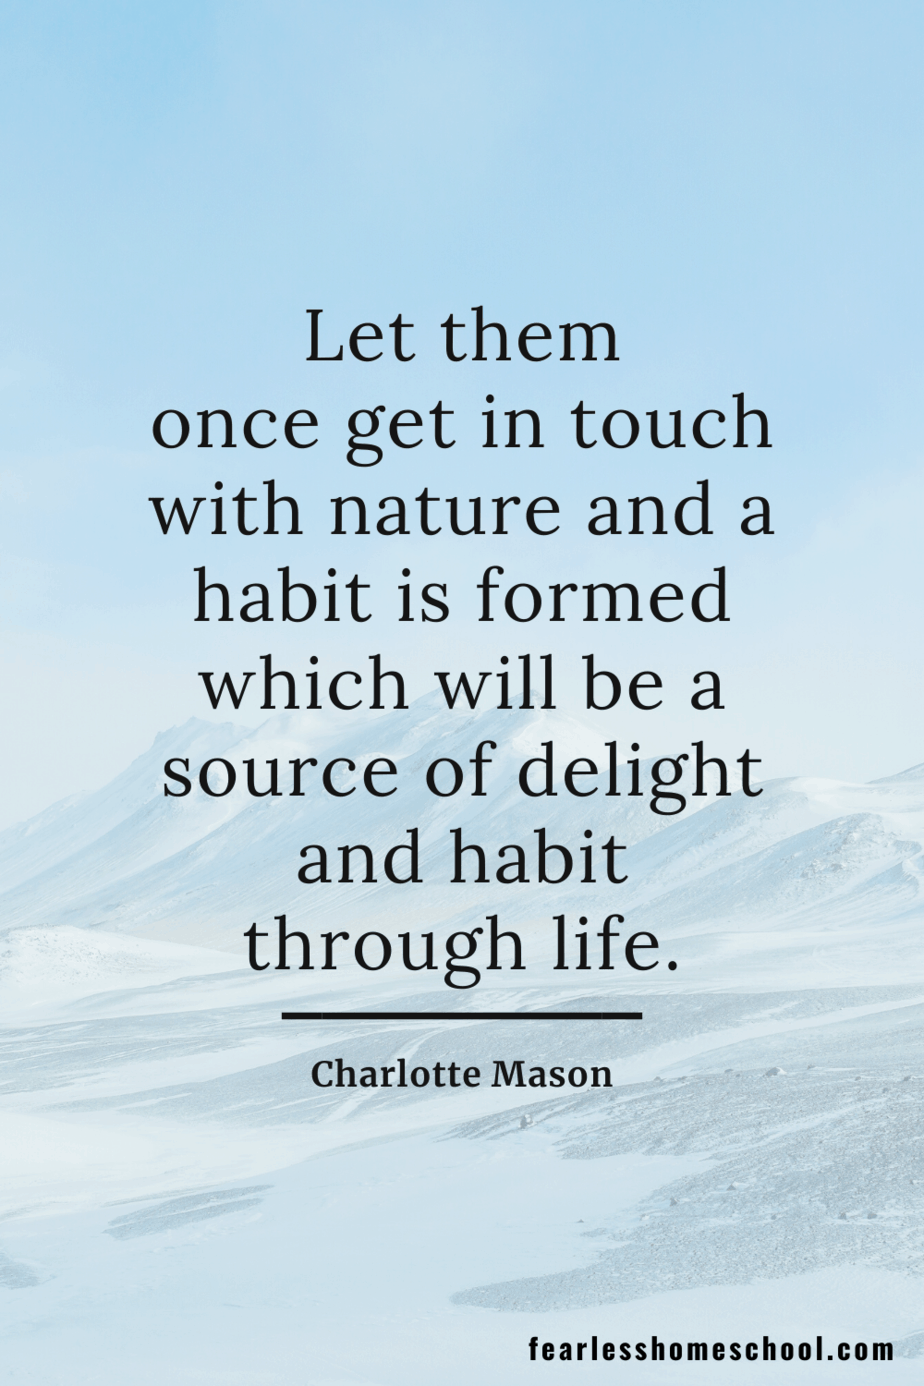 Let them once get in touch with nature and a habit is formed which will be a source of delight and habit through life. Charlotte Mason homeschooling quote